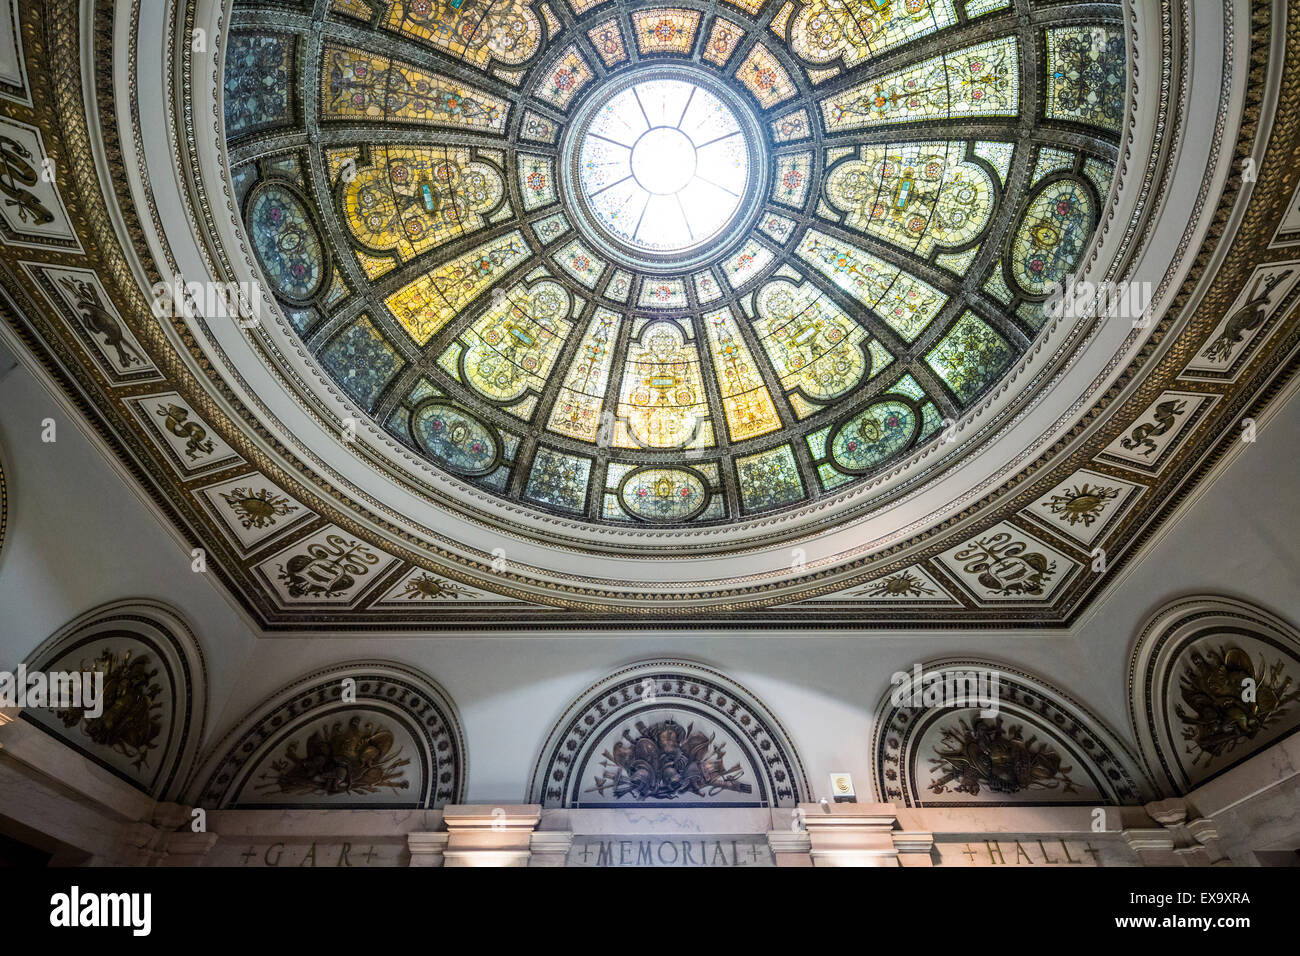 domed skylight, Chicago Cultural Center, formerly the Chicago Public Library, Chicago, Illinois, USA - Stock Image